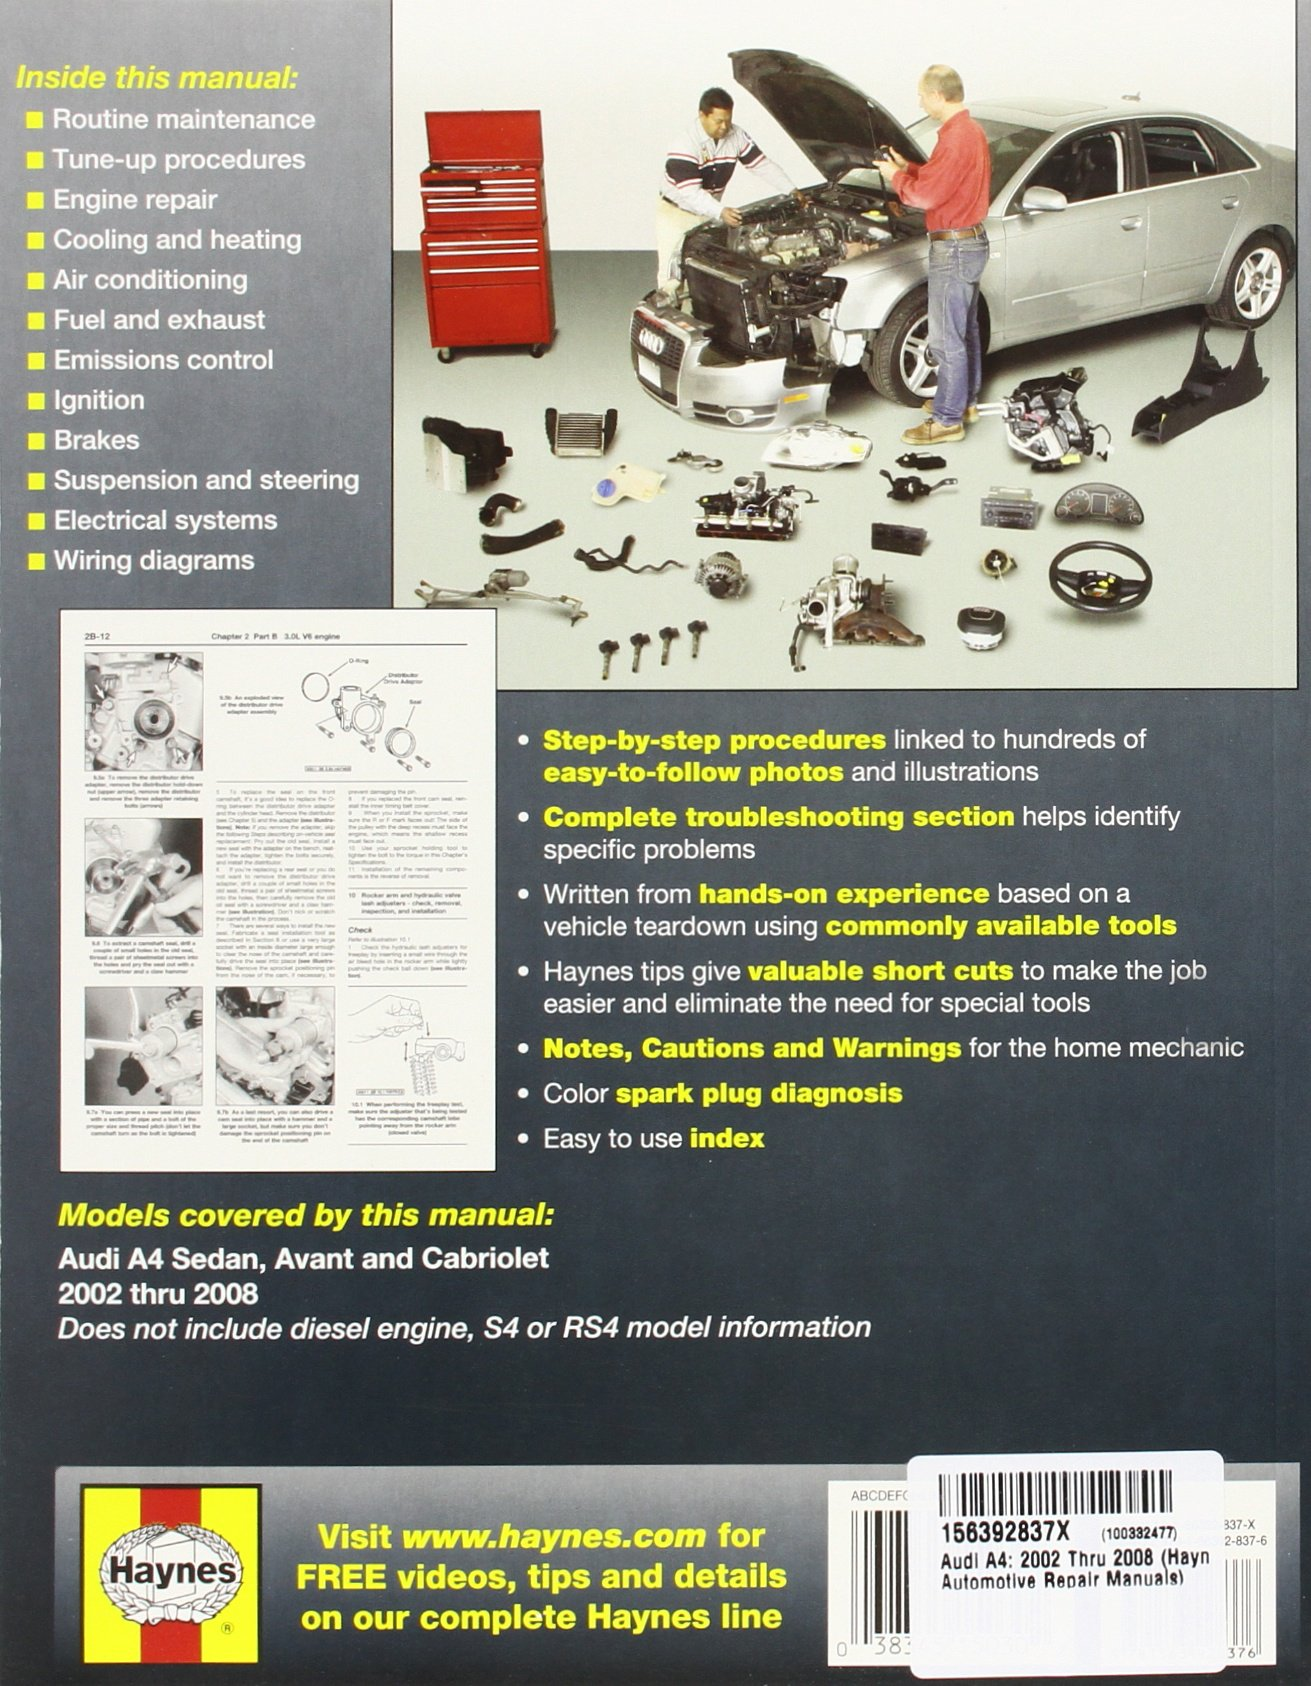 Audi A4 02 08 Haynes Repair Manual Paperback Ht Motor Wiring Diagram Publishing 9781563928376 Books